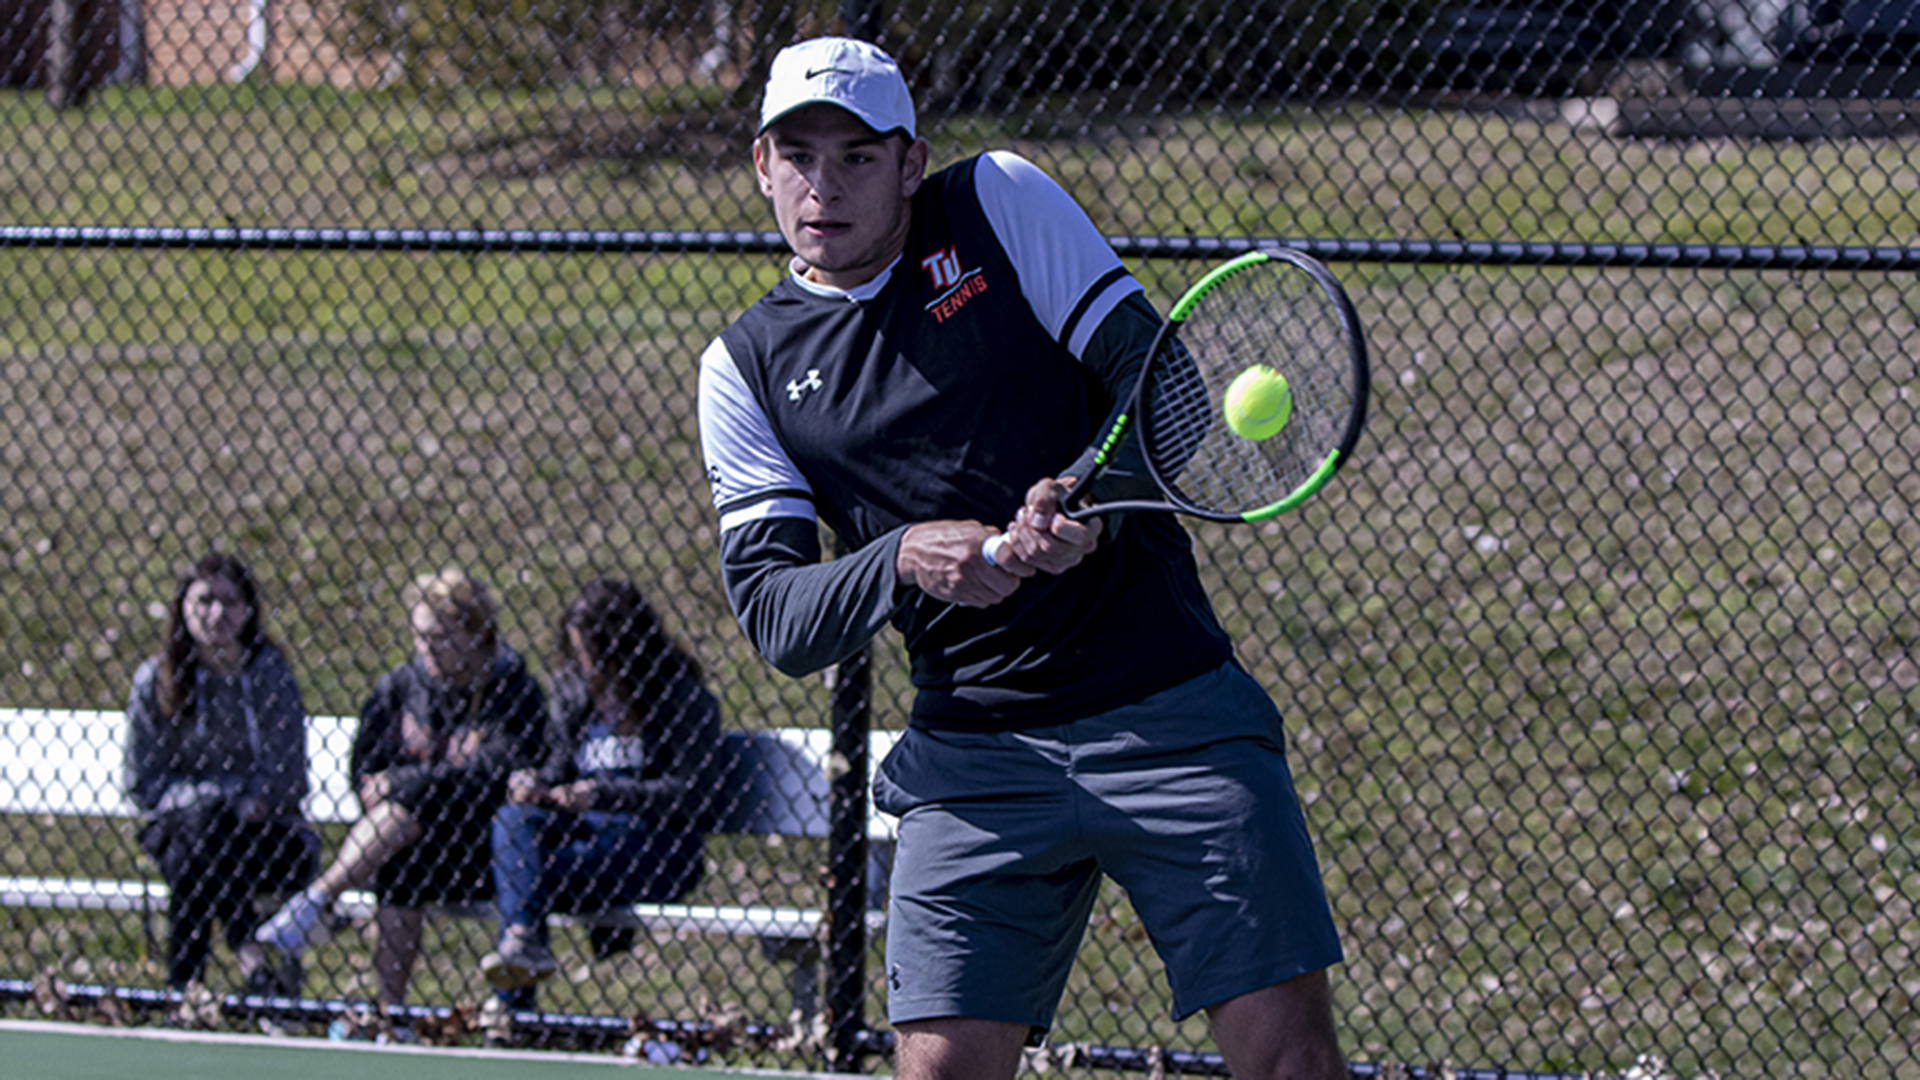 Three-set matches go to Anderson in 5-2 win over Pioneers